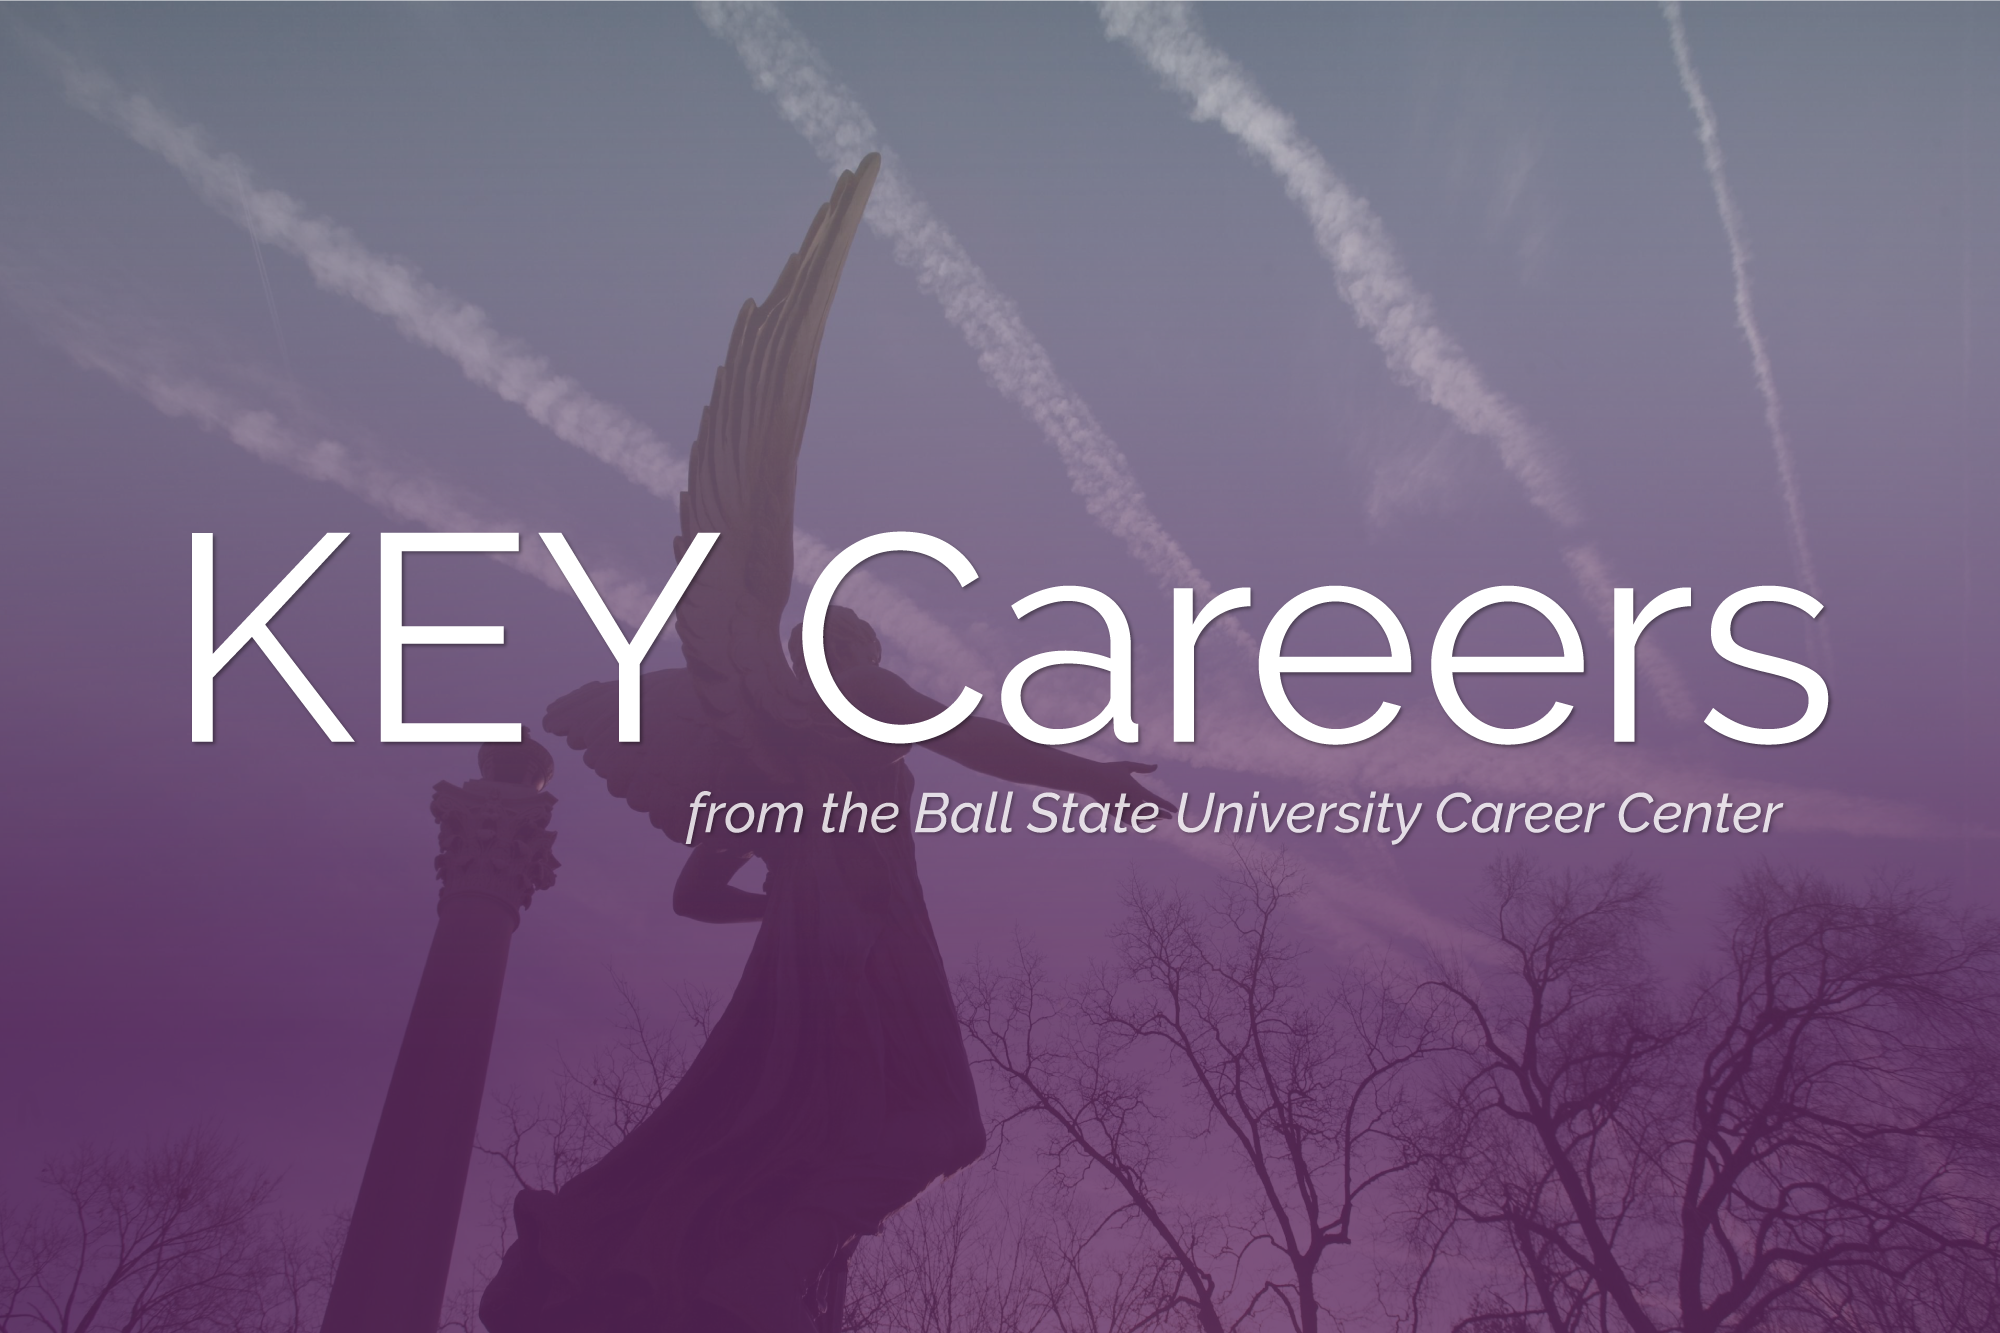 Career Site for Ball State University Career Center